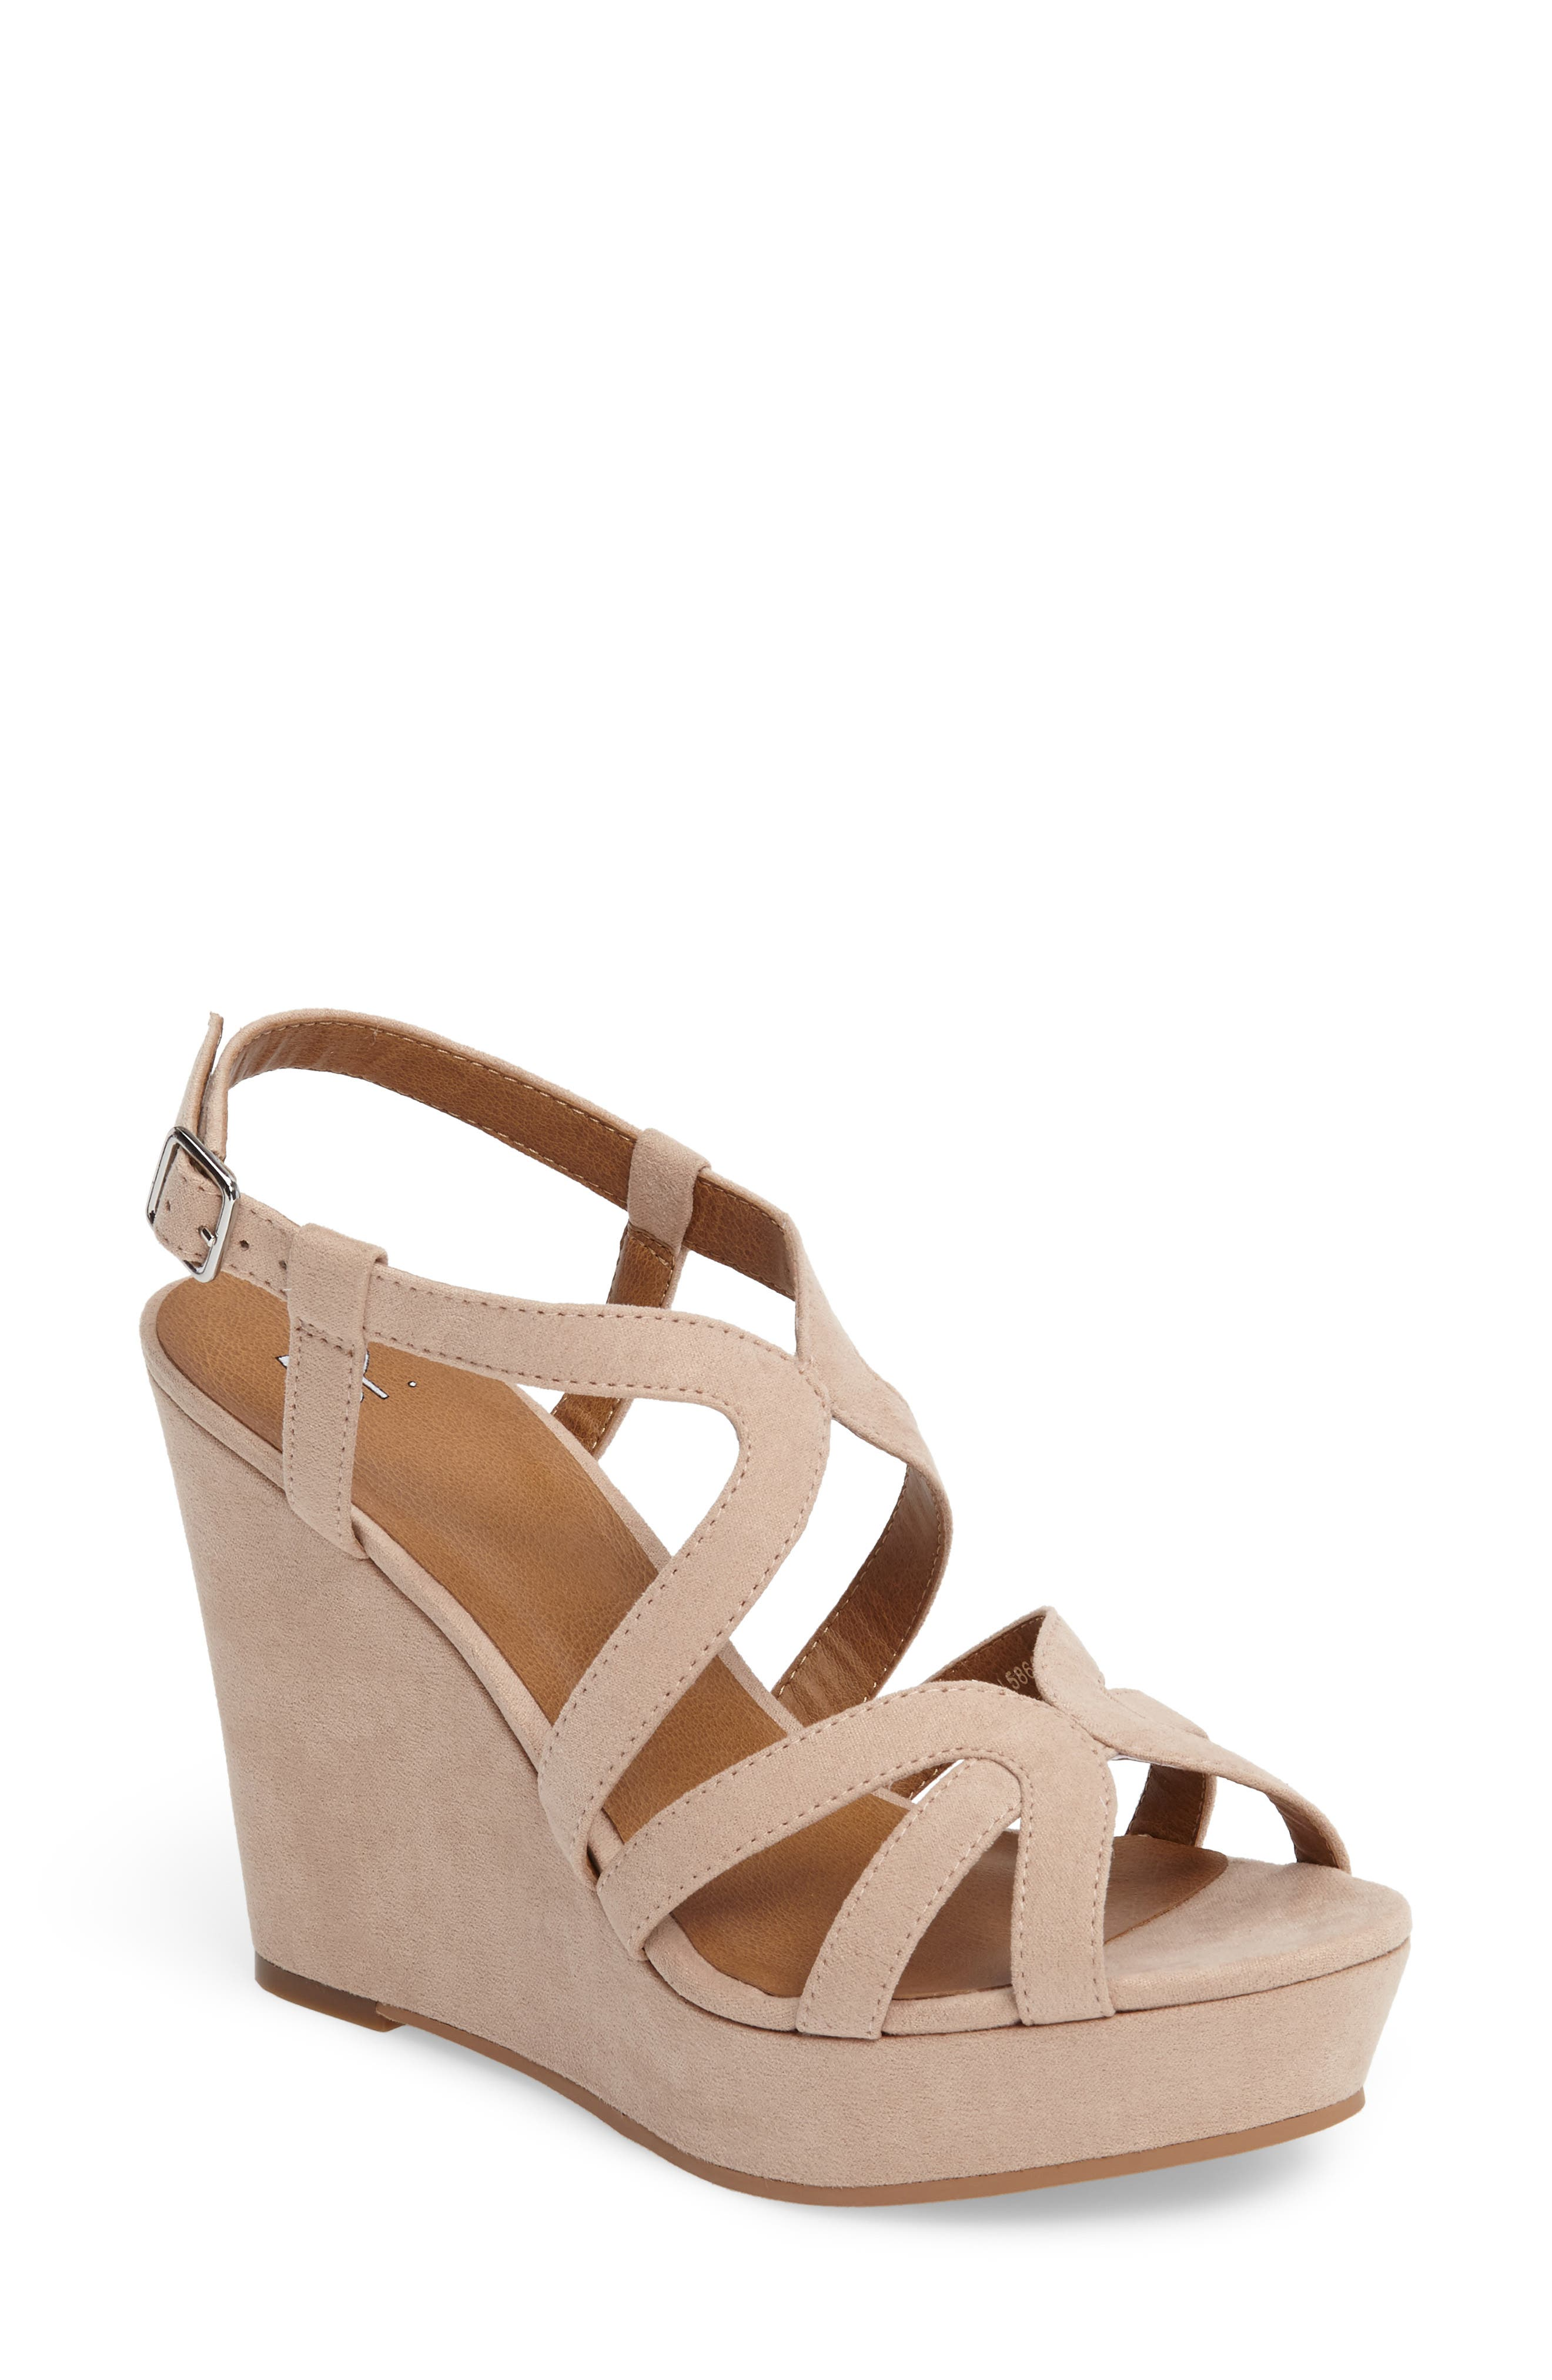 Alternate Image 1 Selected - BP. Sky Wedge Sandal (Women)